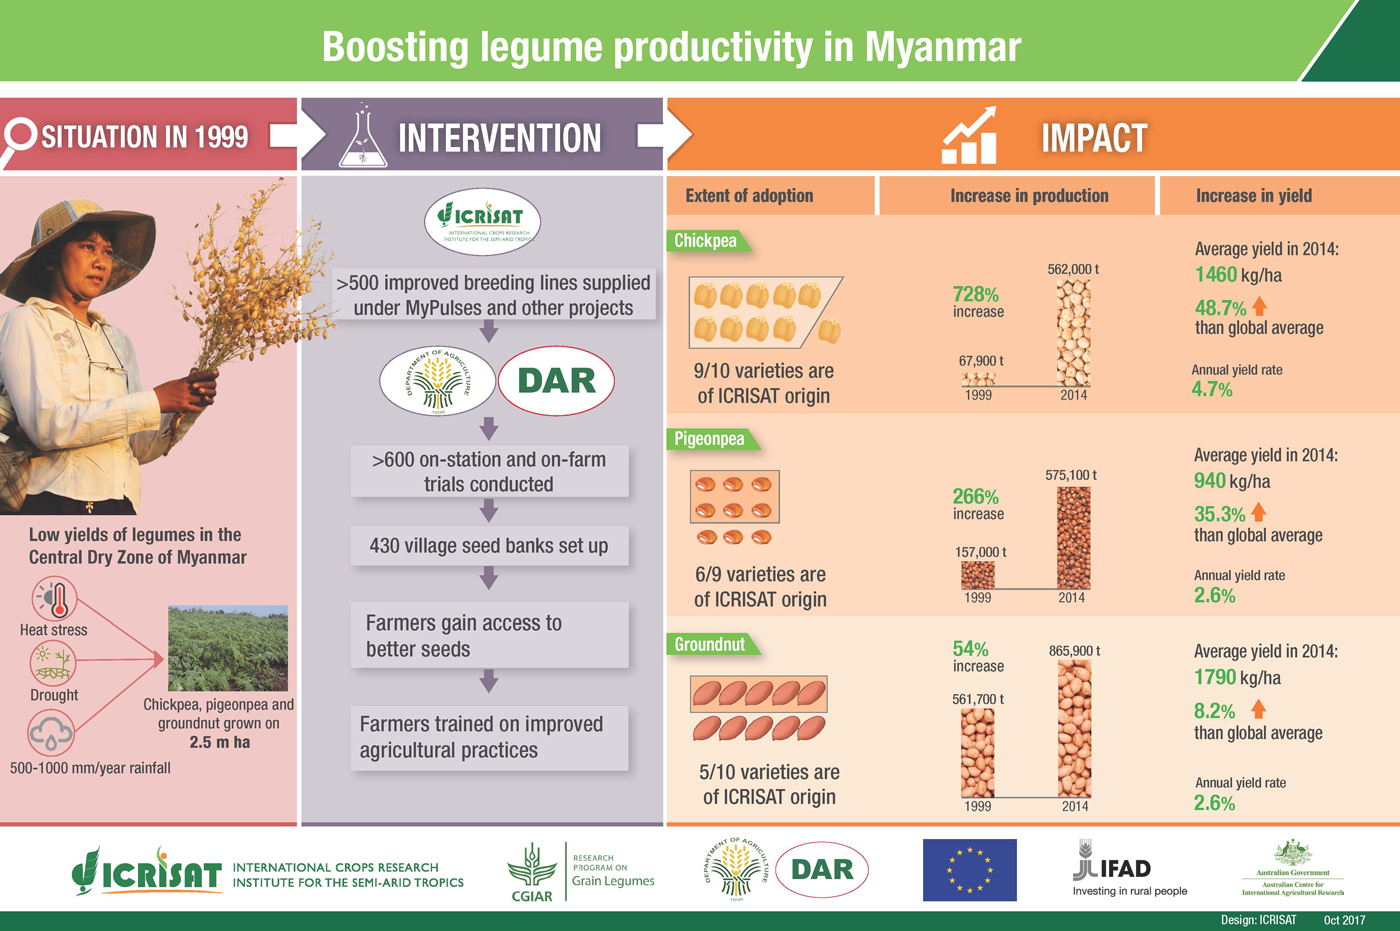 Boosting legume productivity in Myanmar